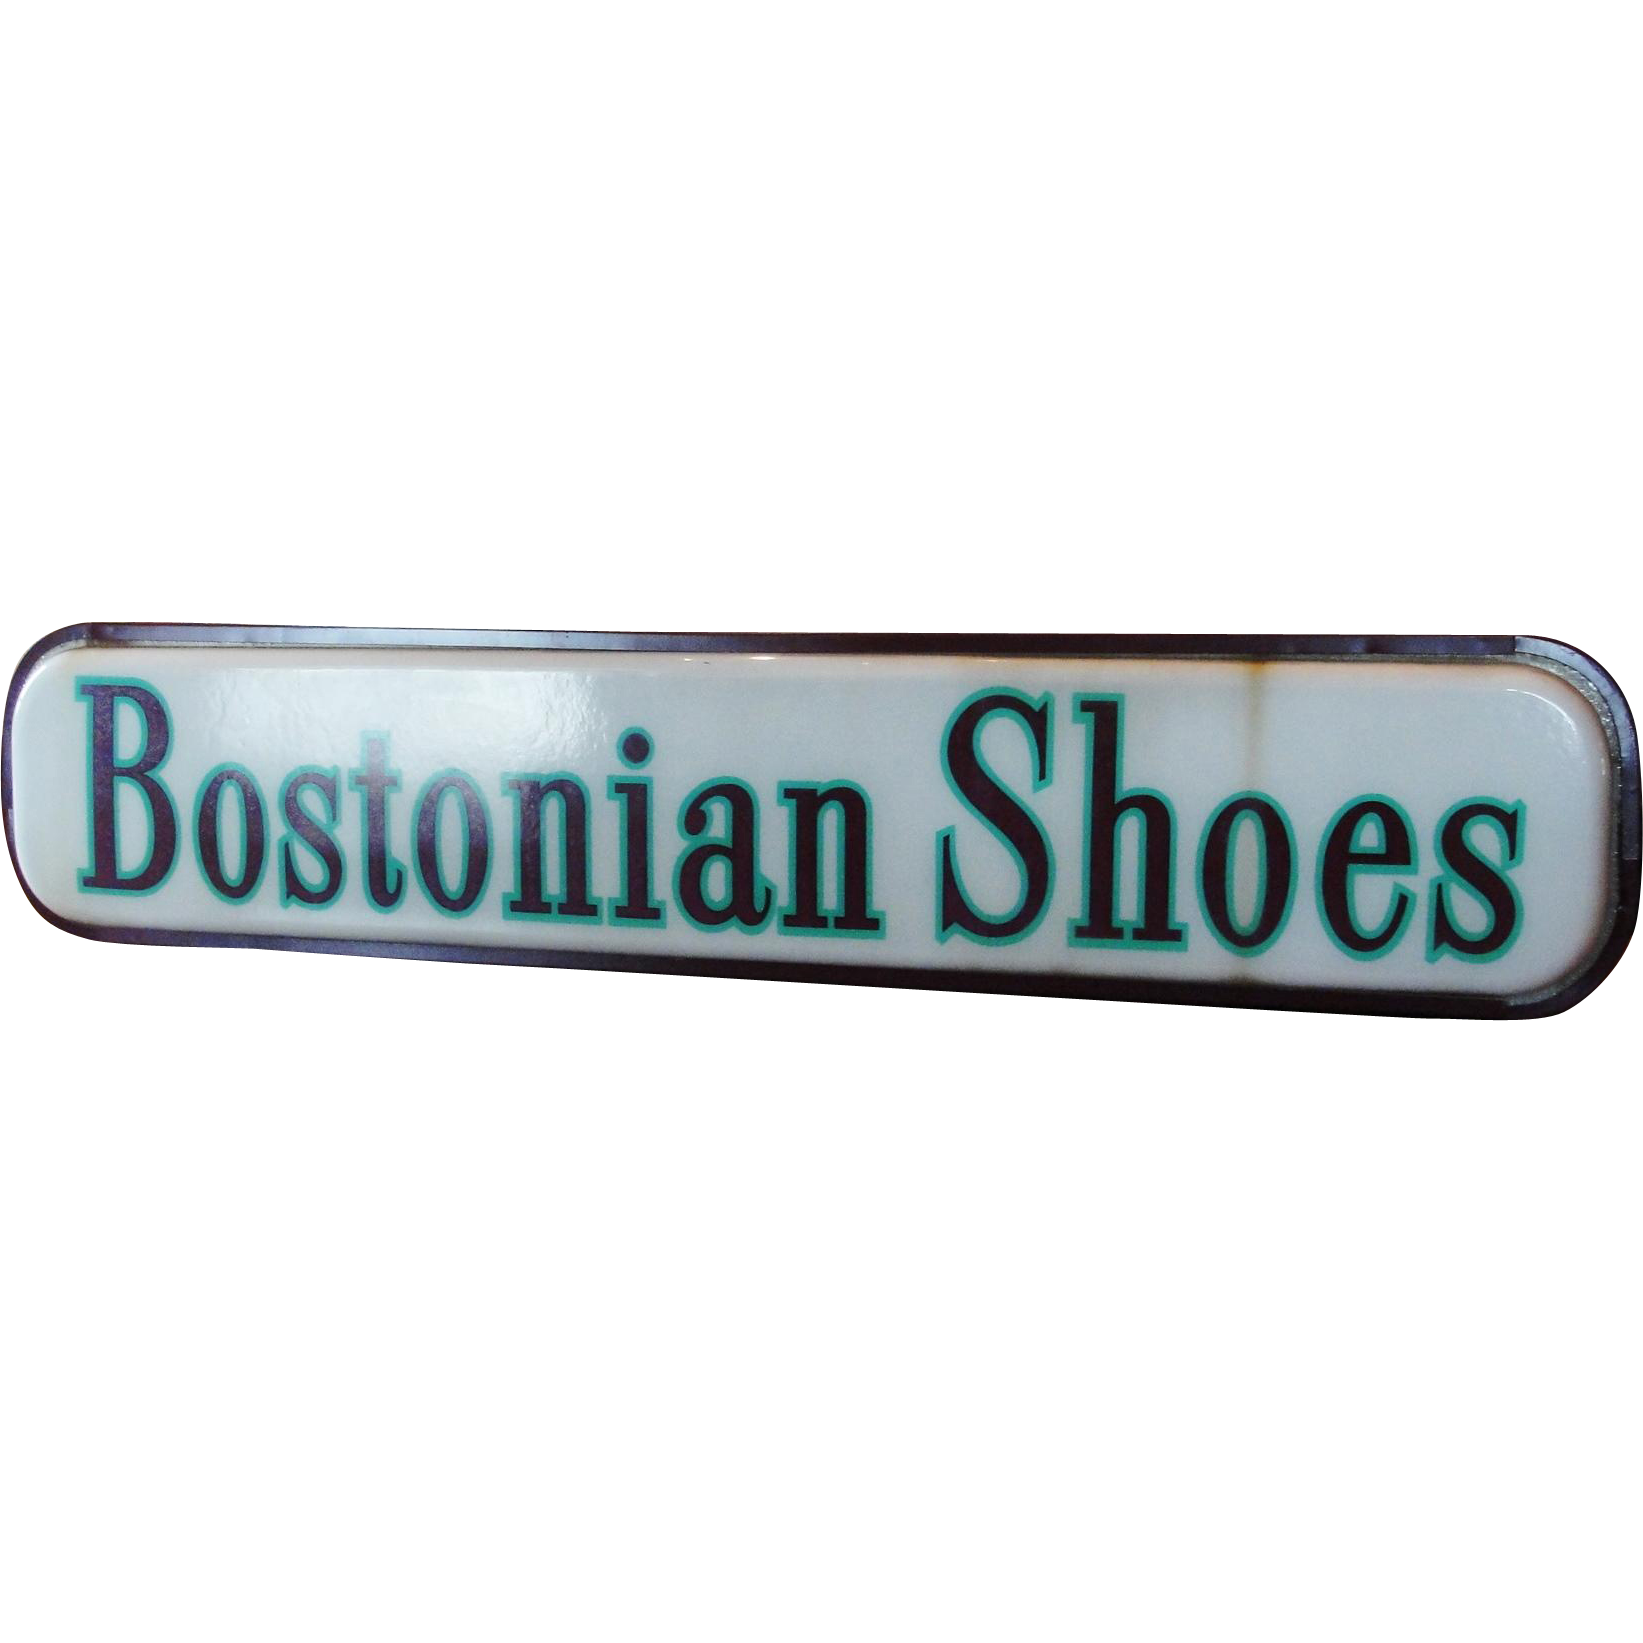 Vintage Double Sided Lighted Advertising Sign Bostonian Shoes